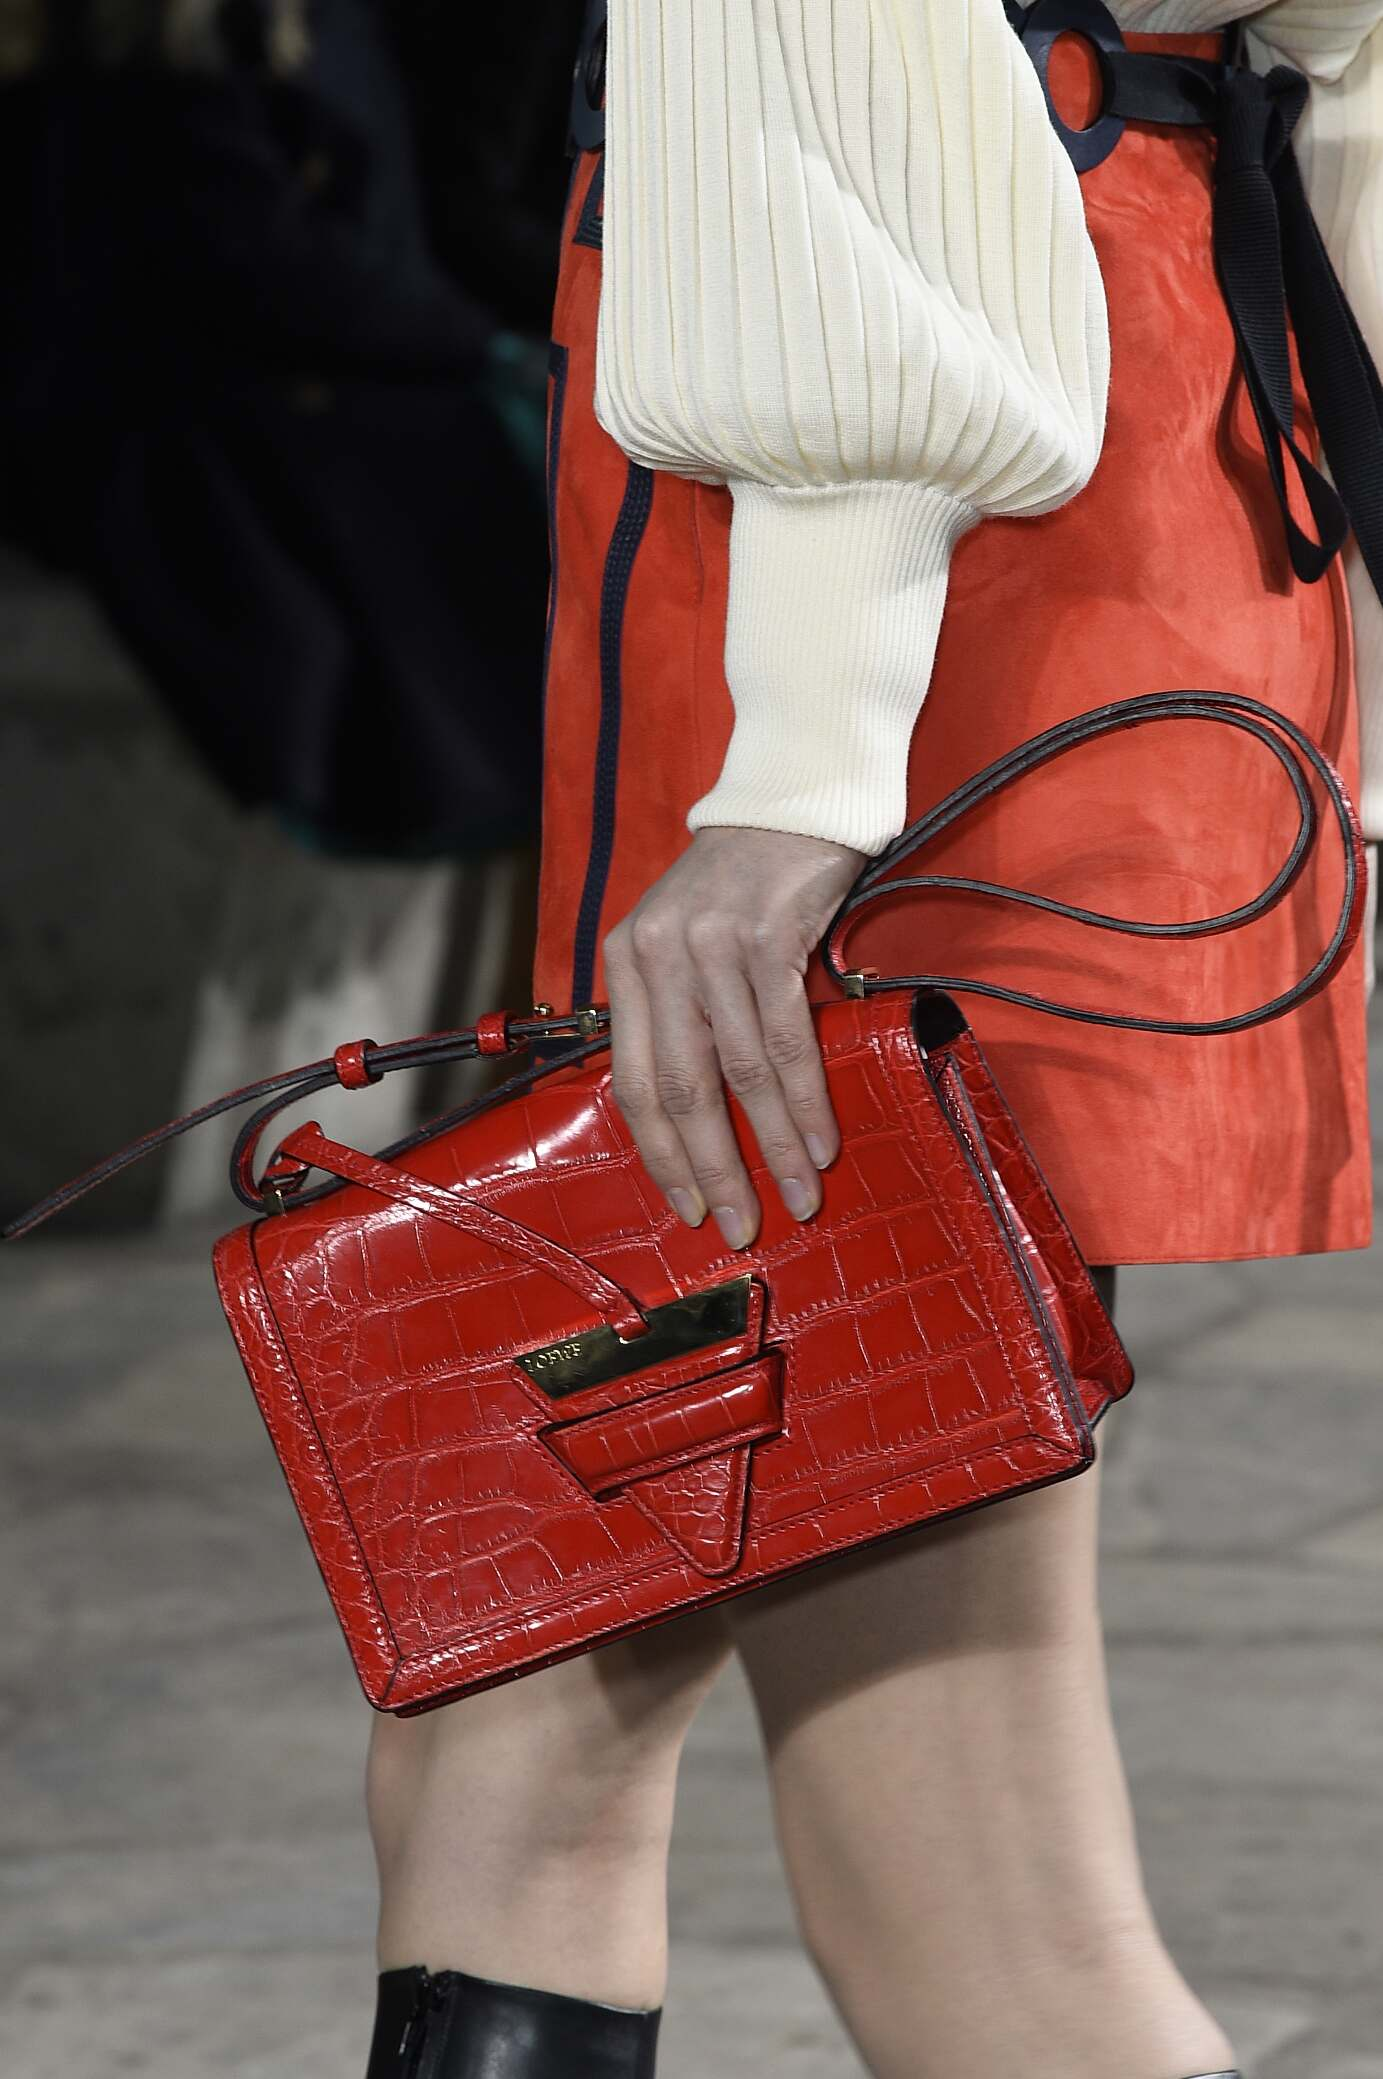 2015 Fall Women Fashion Show Loewe Bag Detail Collection